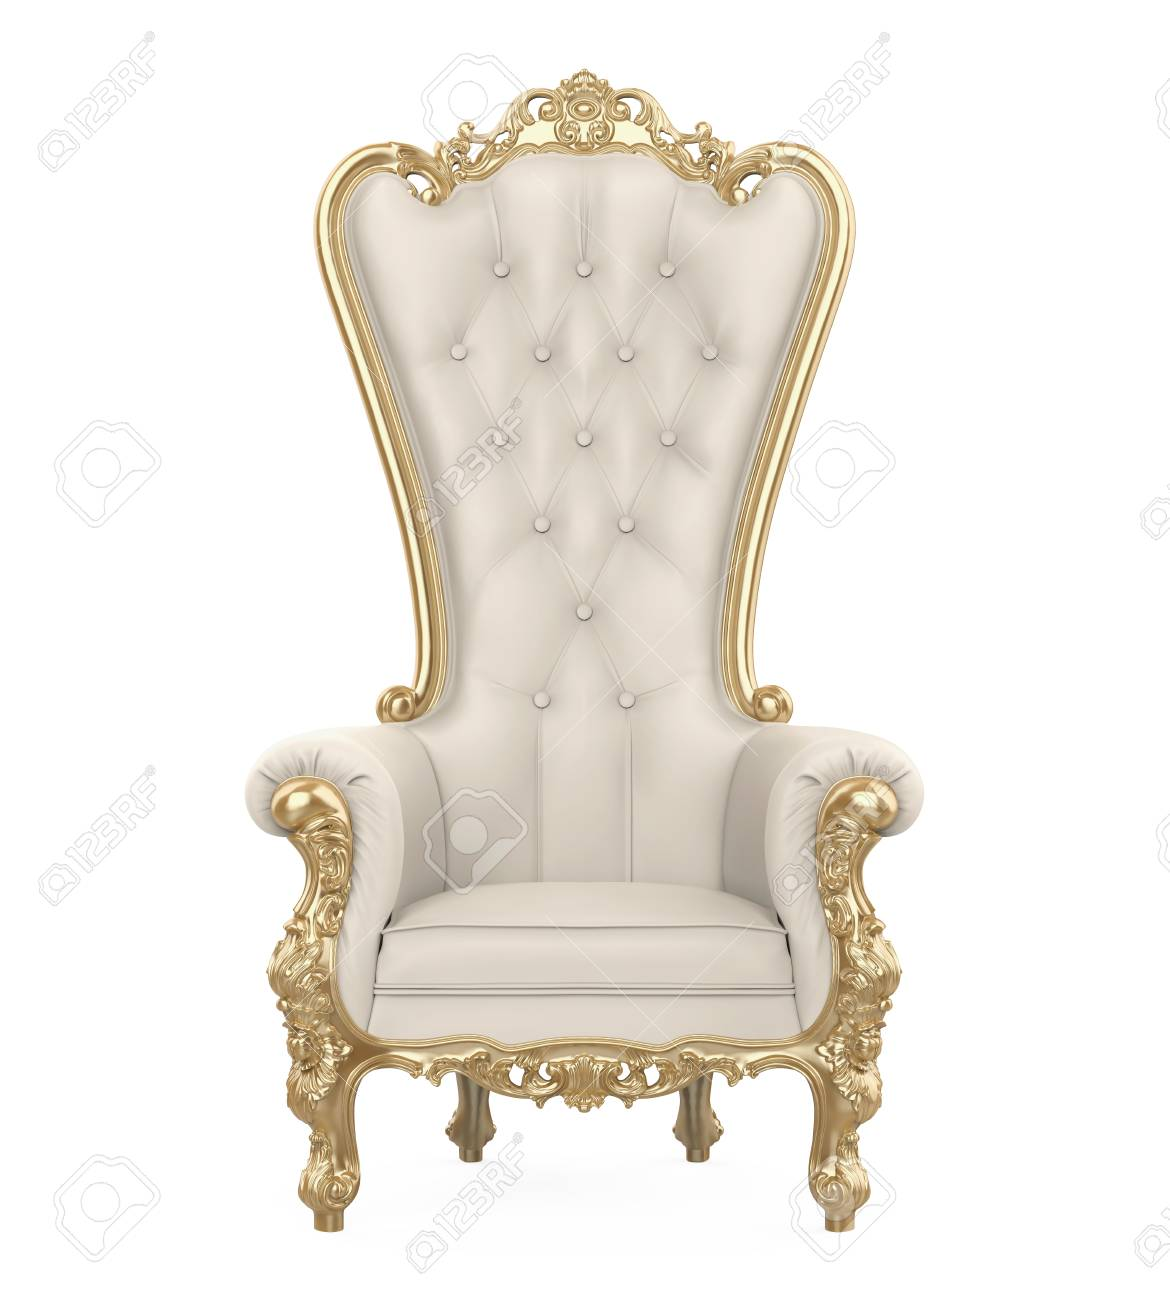 Throne Chair Isolated - 114851937